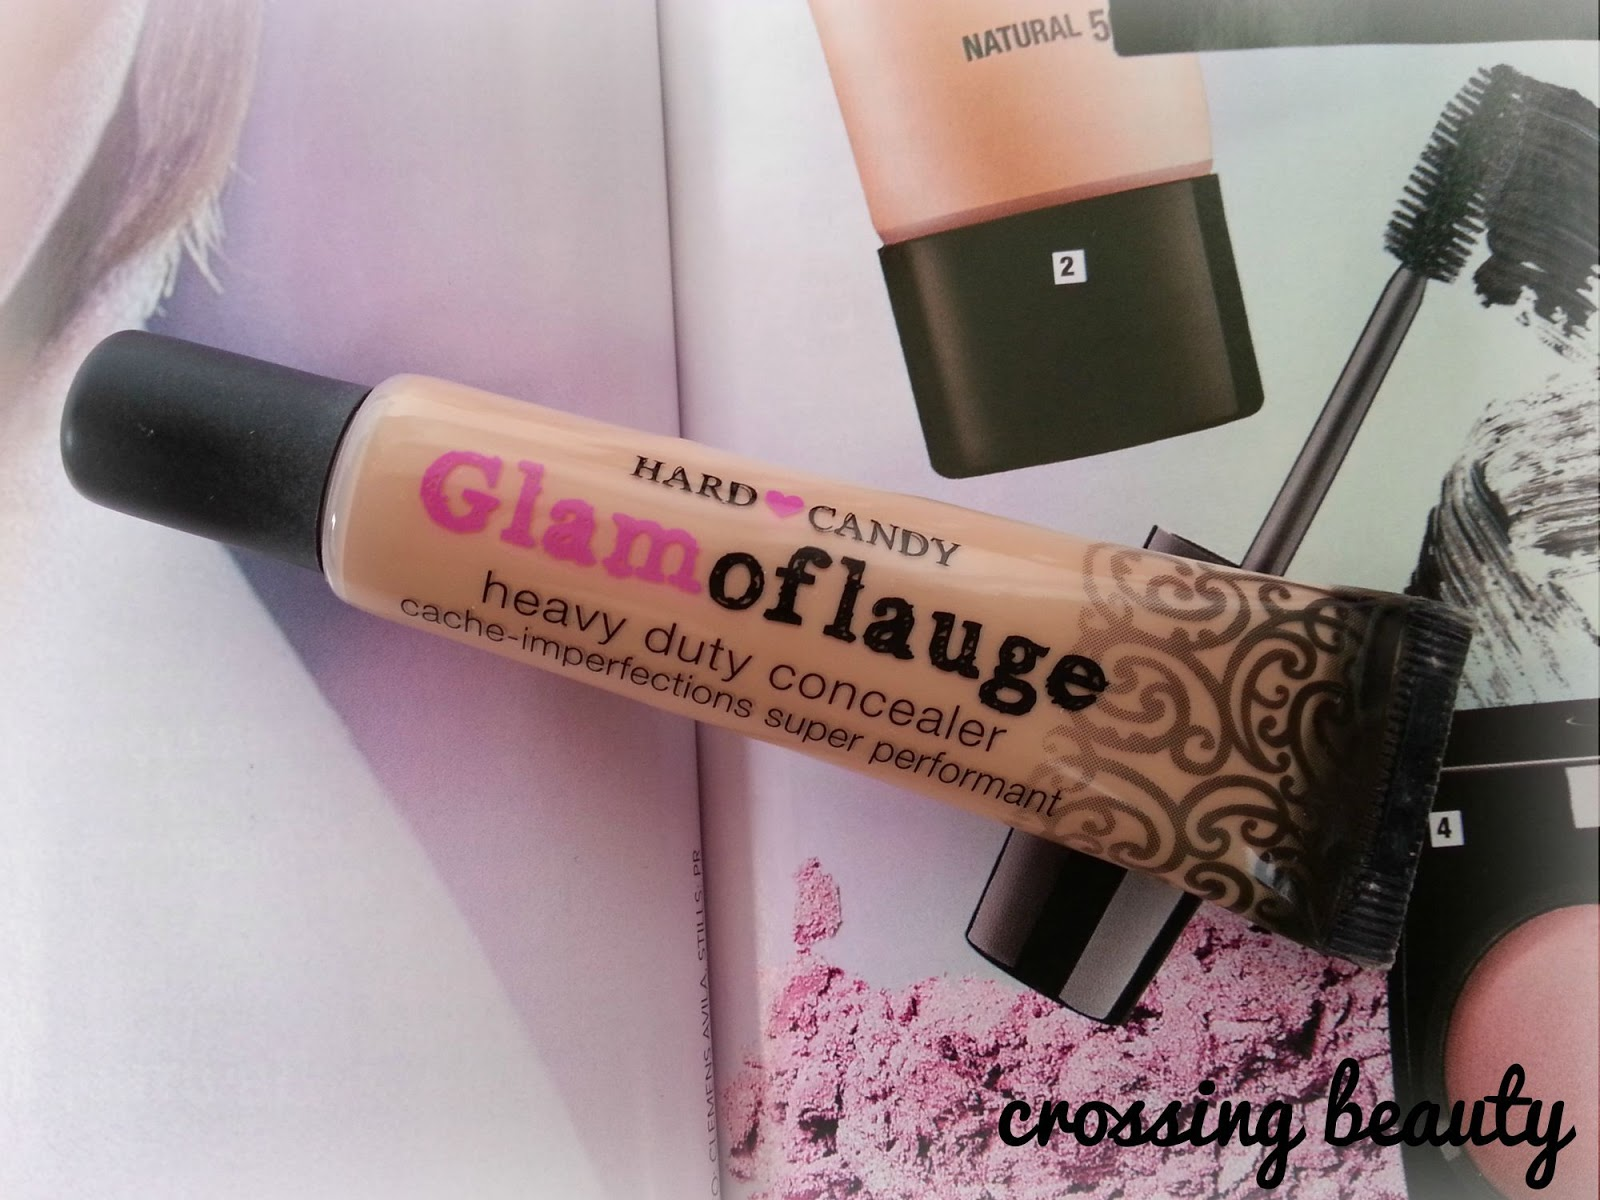 CROSSING BEAUTY: Hard Candy Glamoflauge Heavy Duty Concealer review